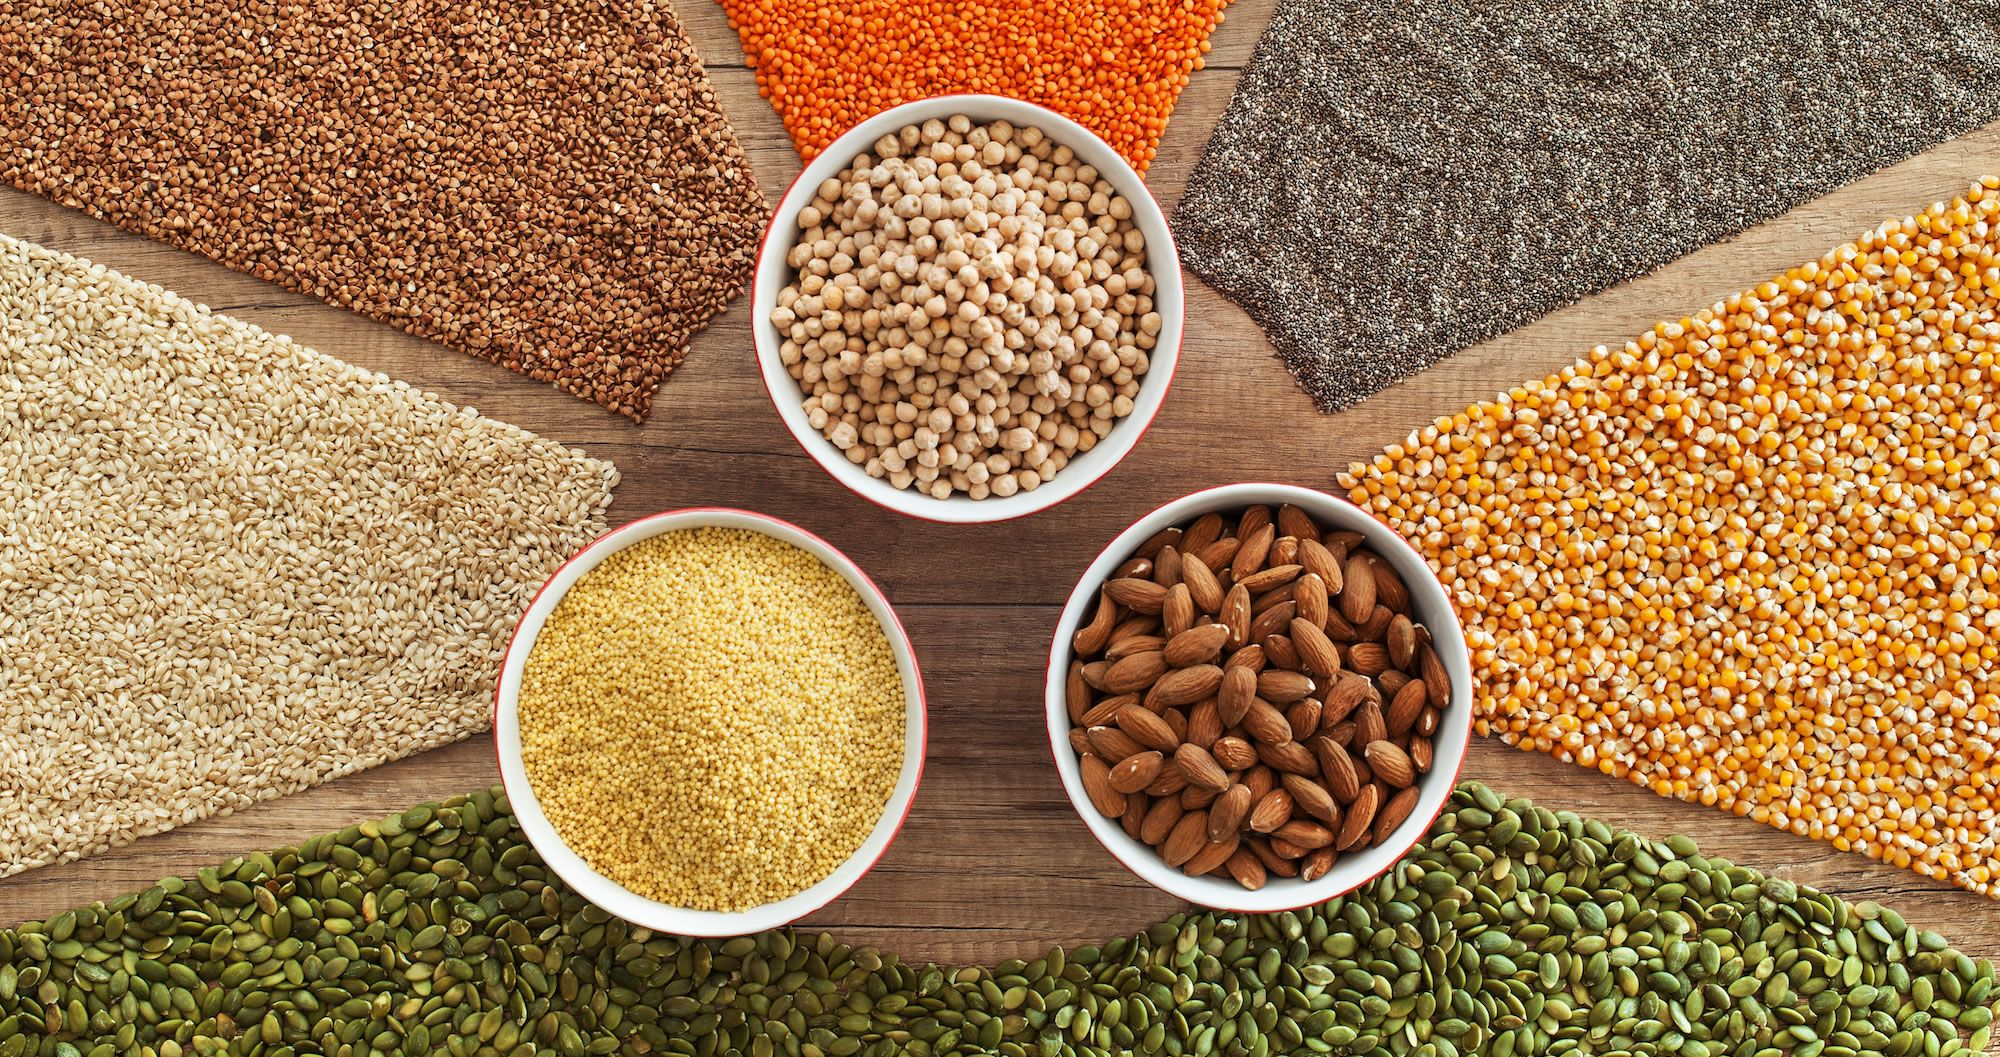 Commodity Procurement for the Food Sector